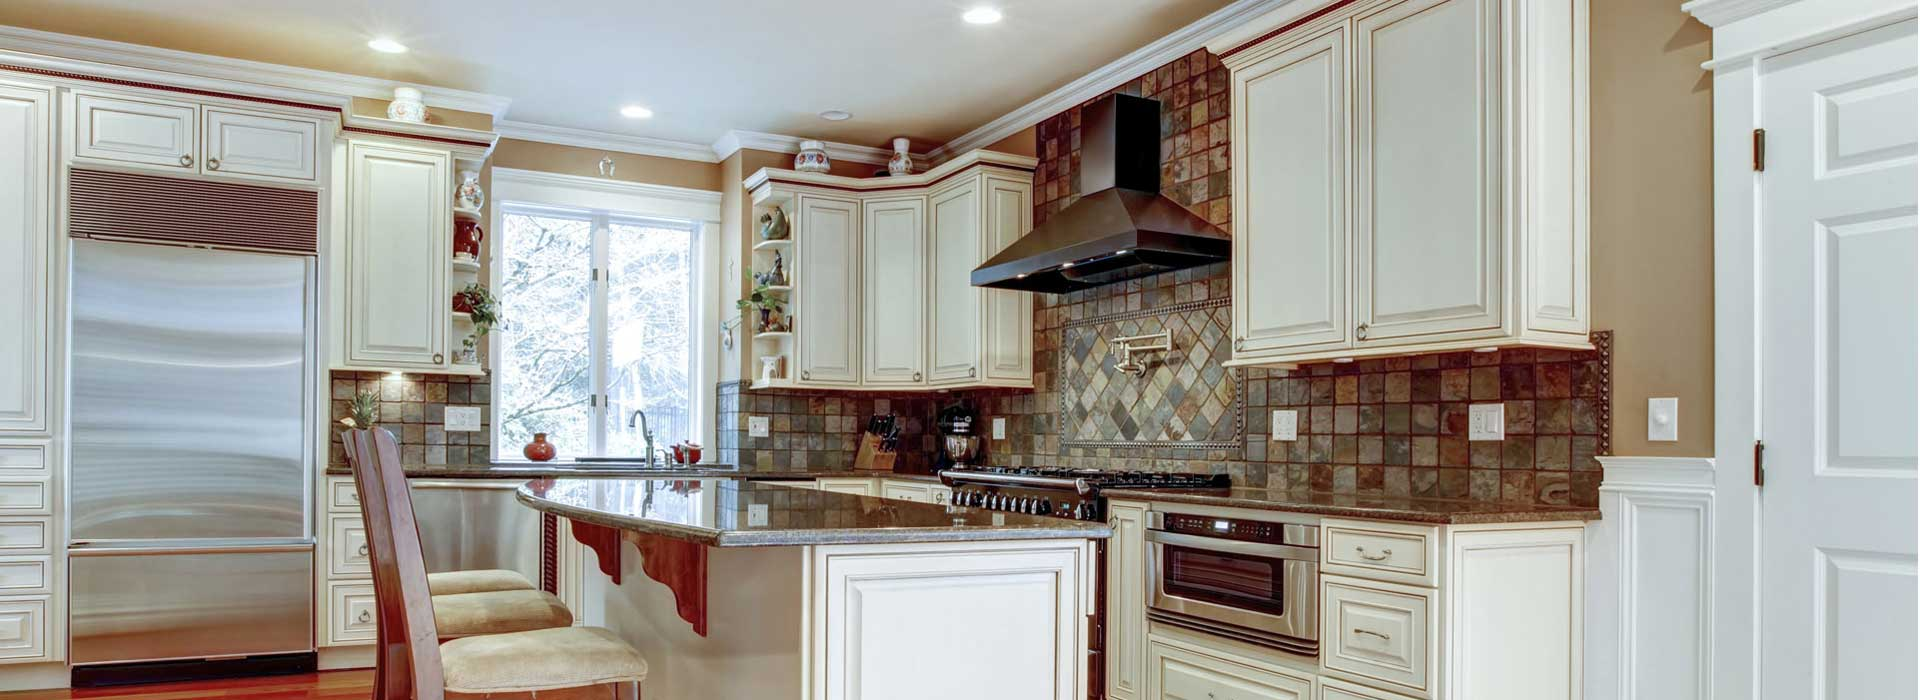 Kitchen Cabinets Brooklyn Ny New Look Kitchen Cabinet Refacing